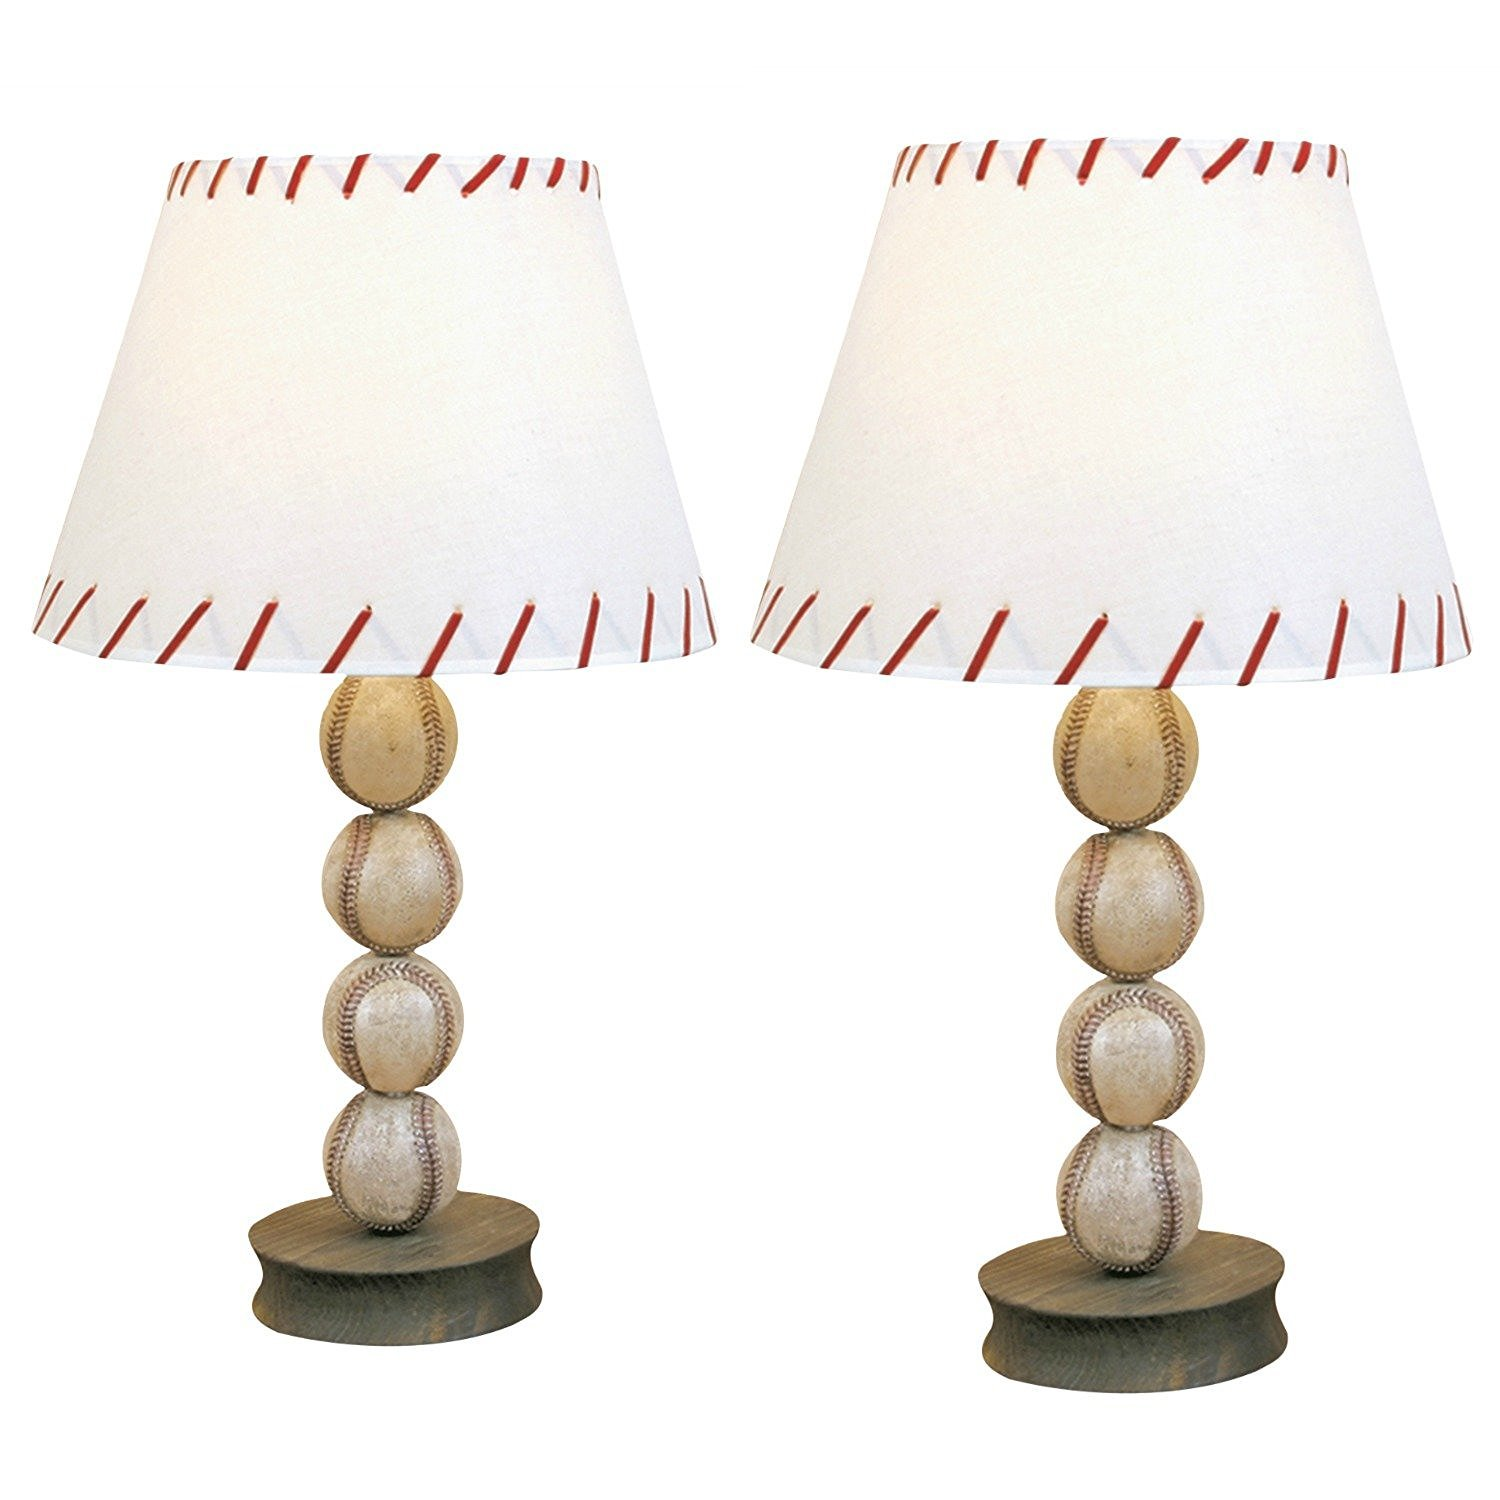 Amazon.com: DEI Baseball Ball Sports Table Lamp Accent Desk Light (2 Pack):  Baby